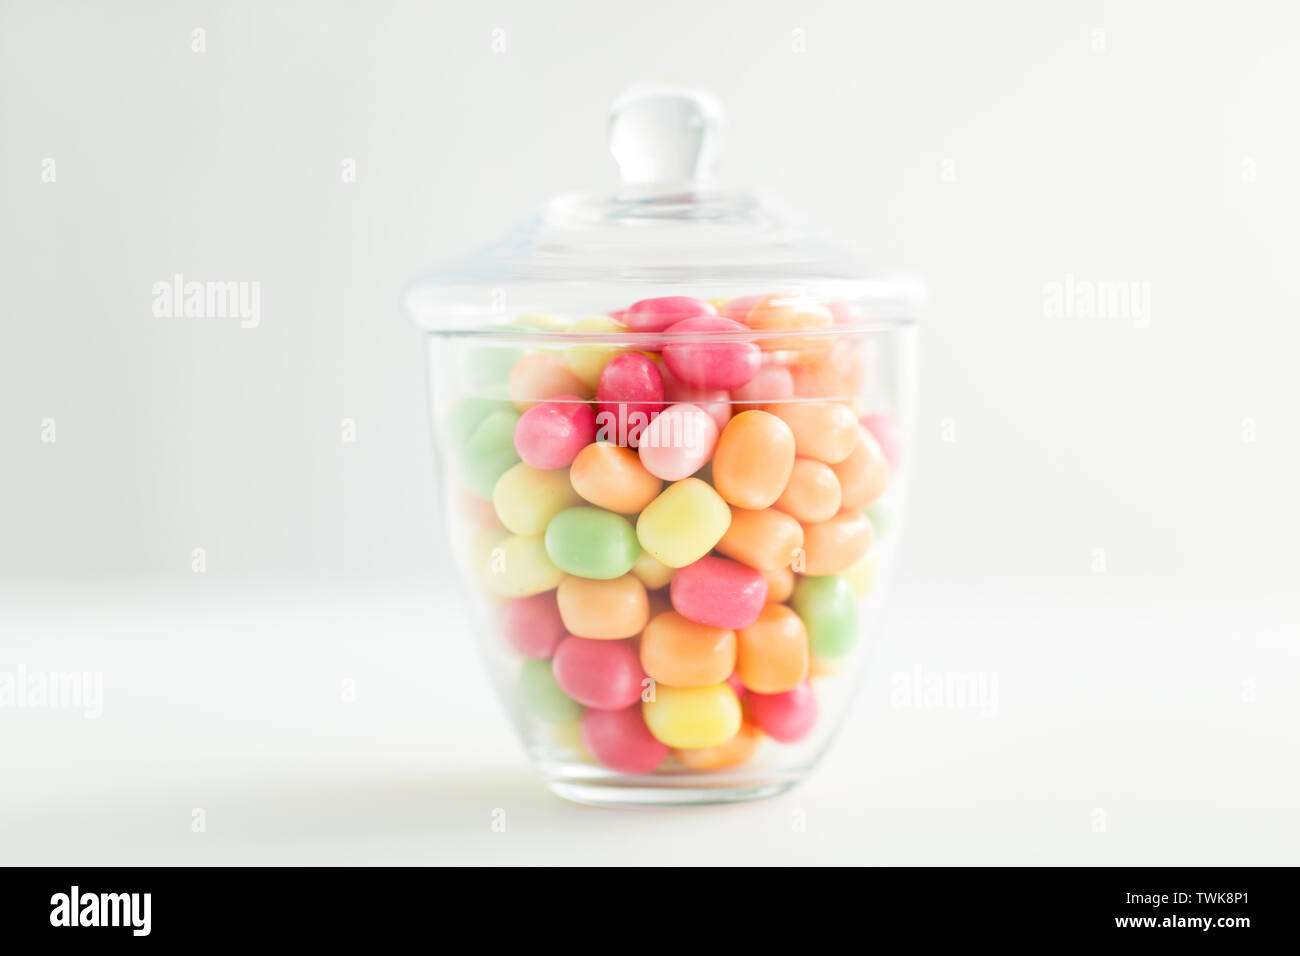 glass jar with candy drops over white background - Stock Image